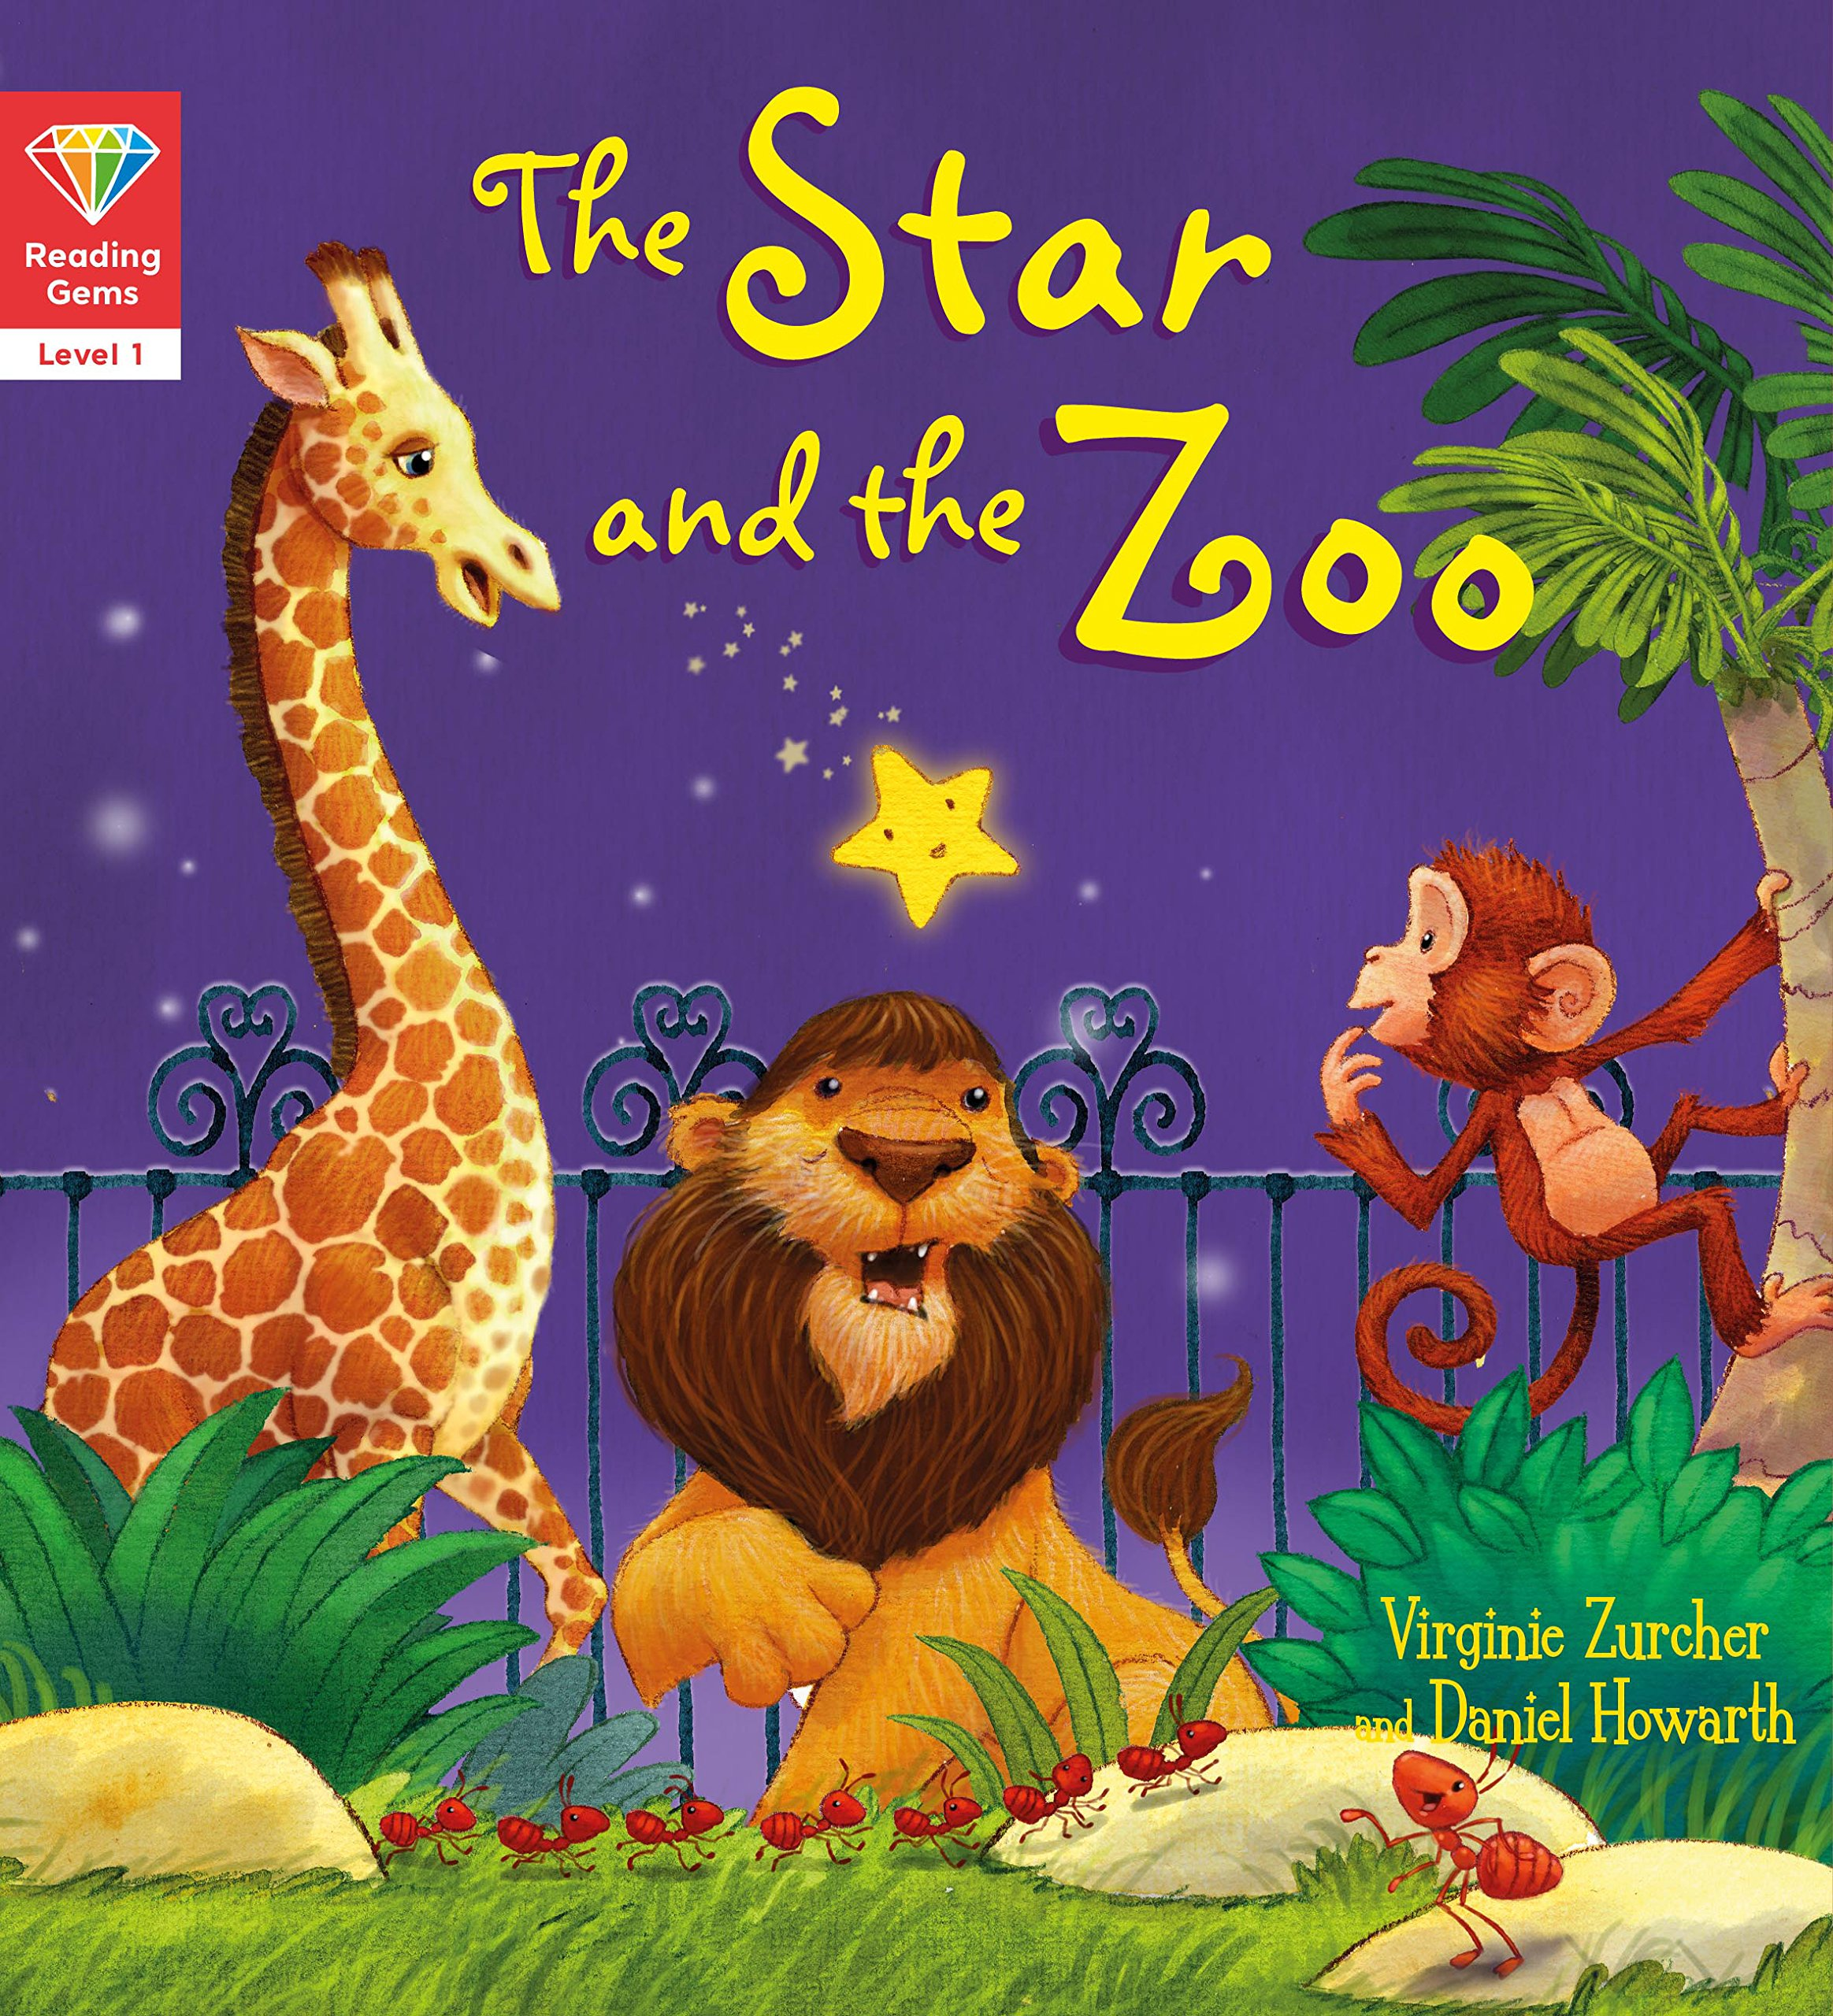 Reading Gems The Star And Zoo Level 1 Qed 4 Way Speaker Switch Publishing Books